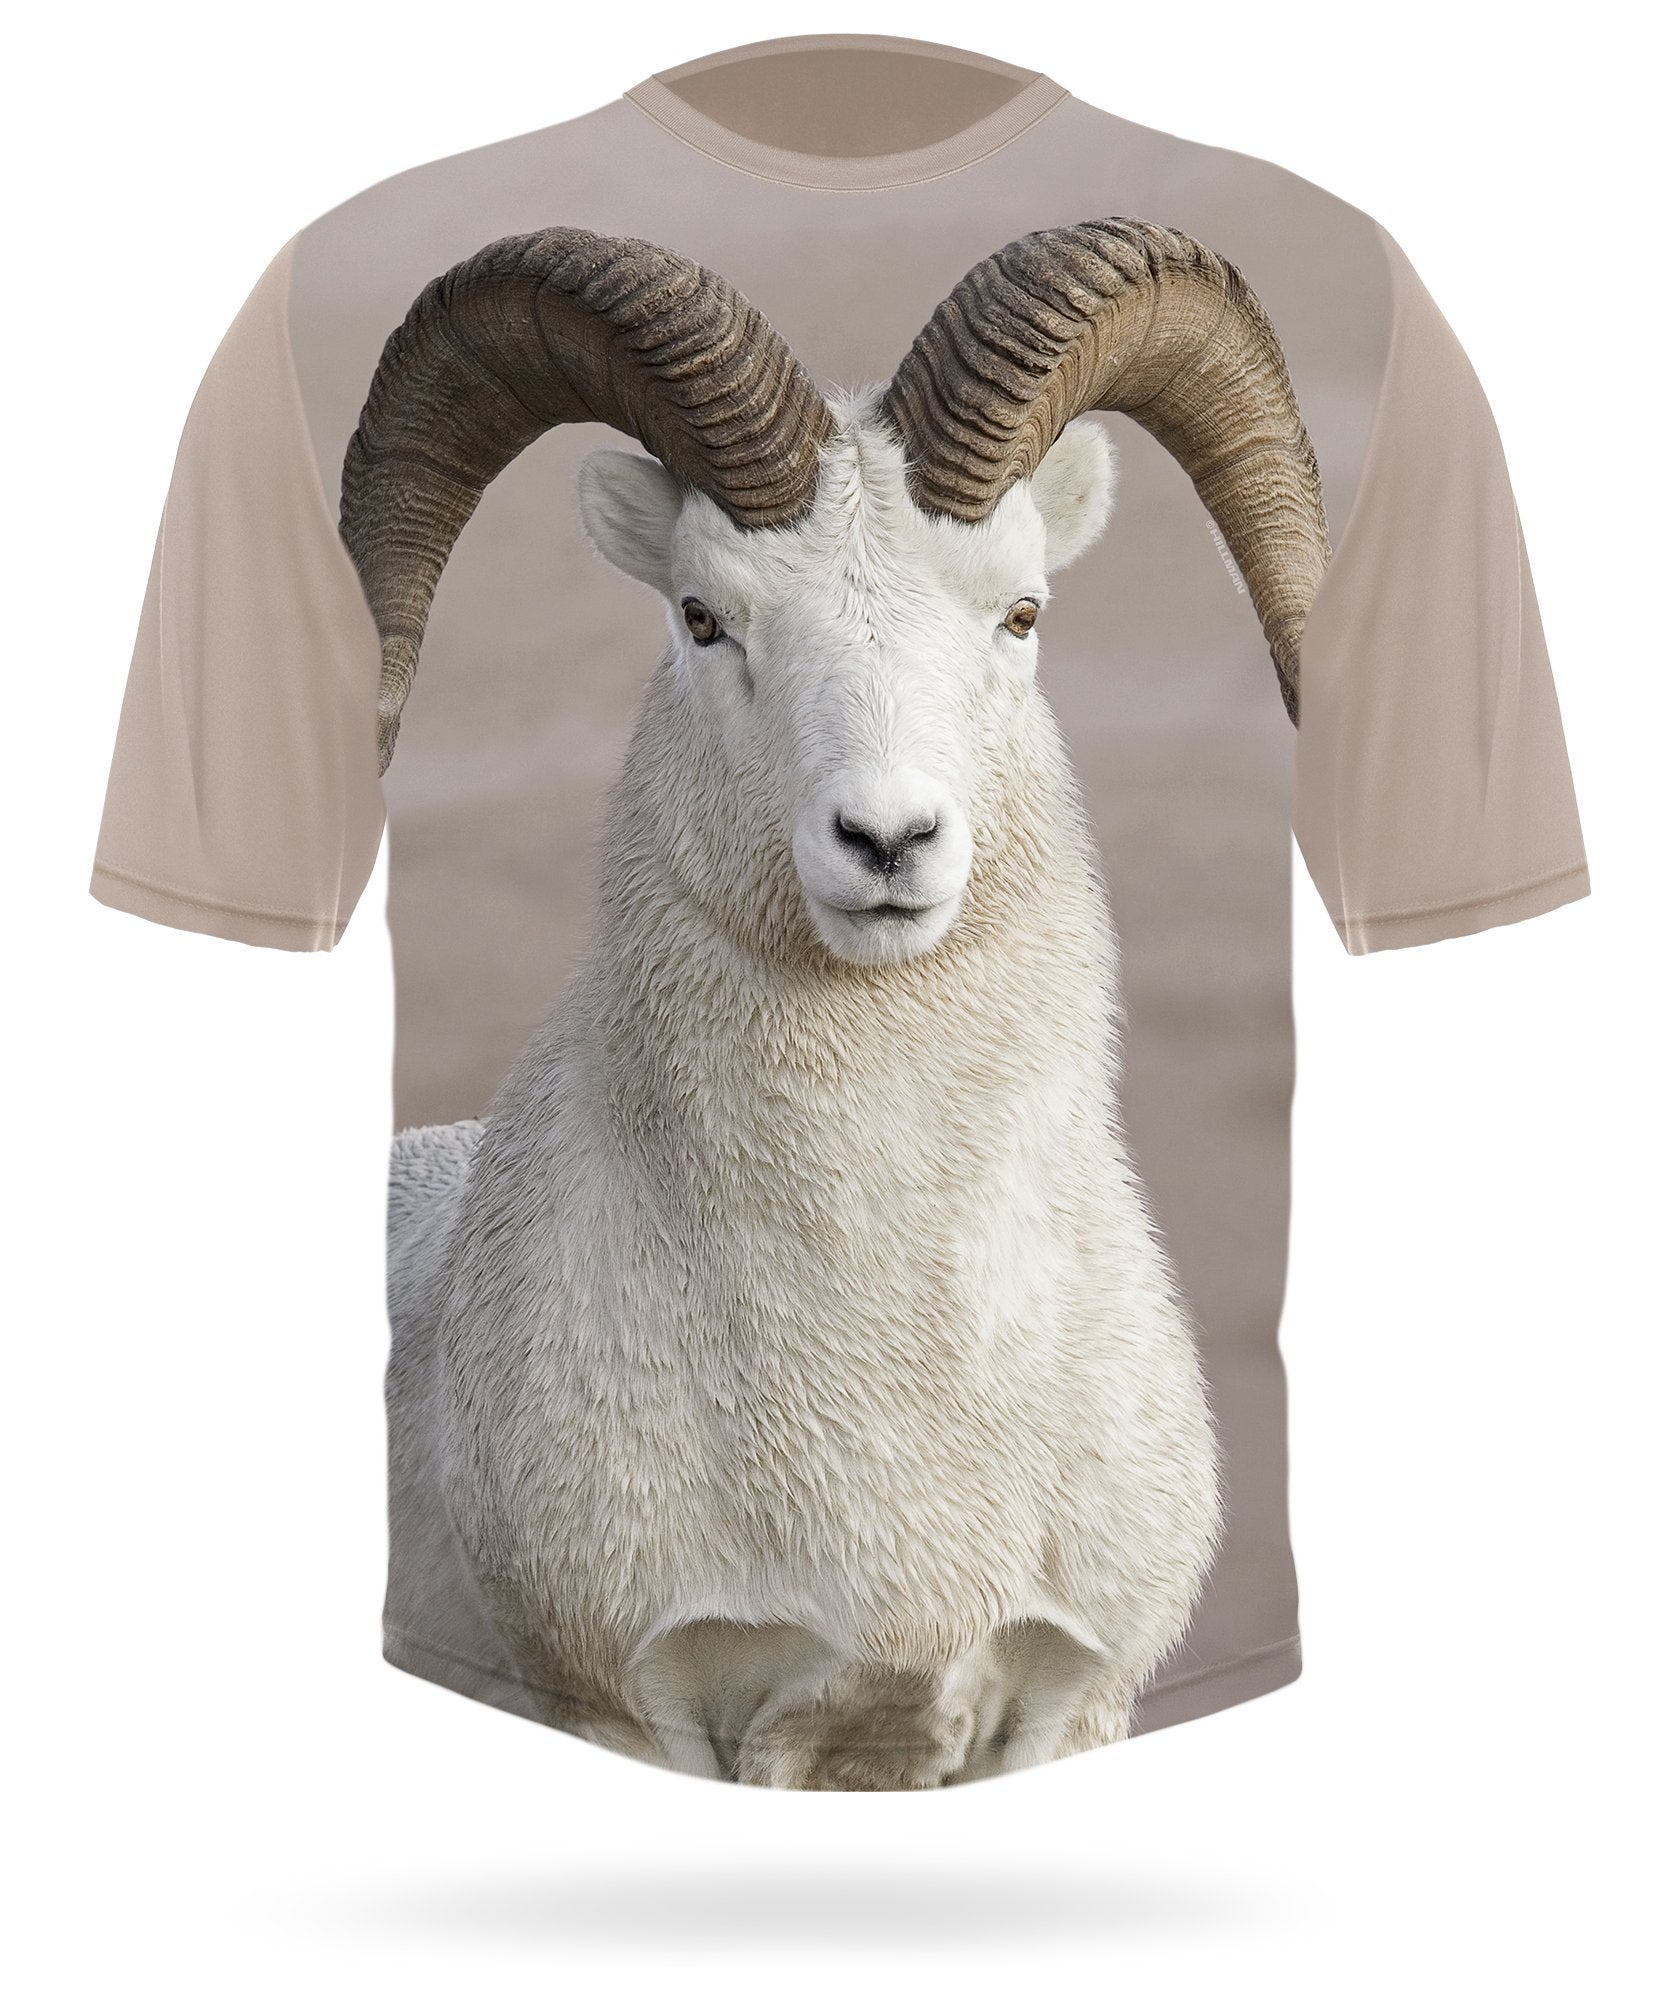 Dall sheep t-shirt short sleeve - HILLMAN® hunting gear